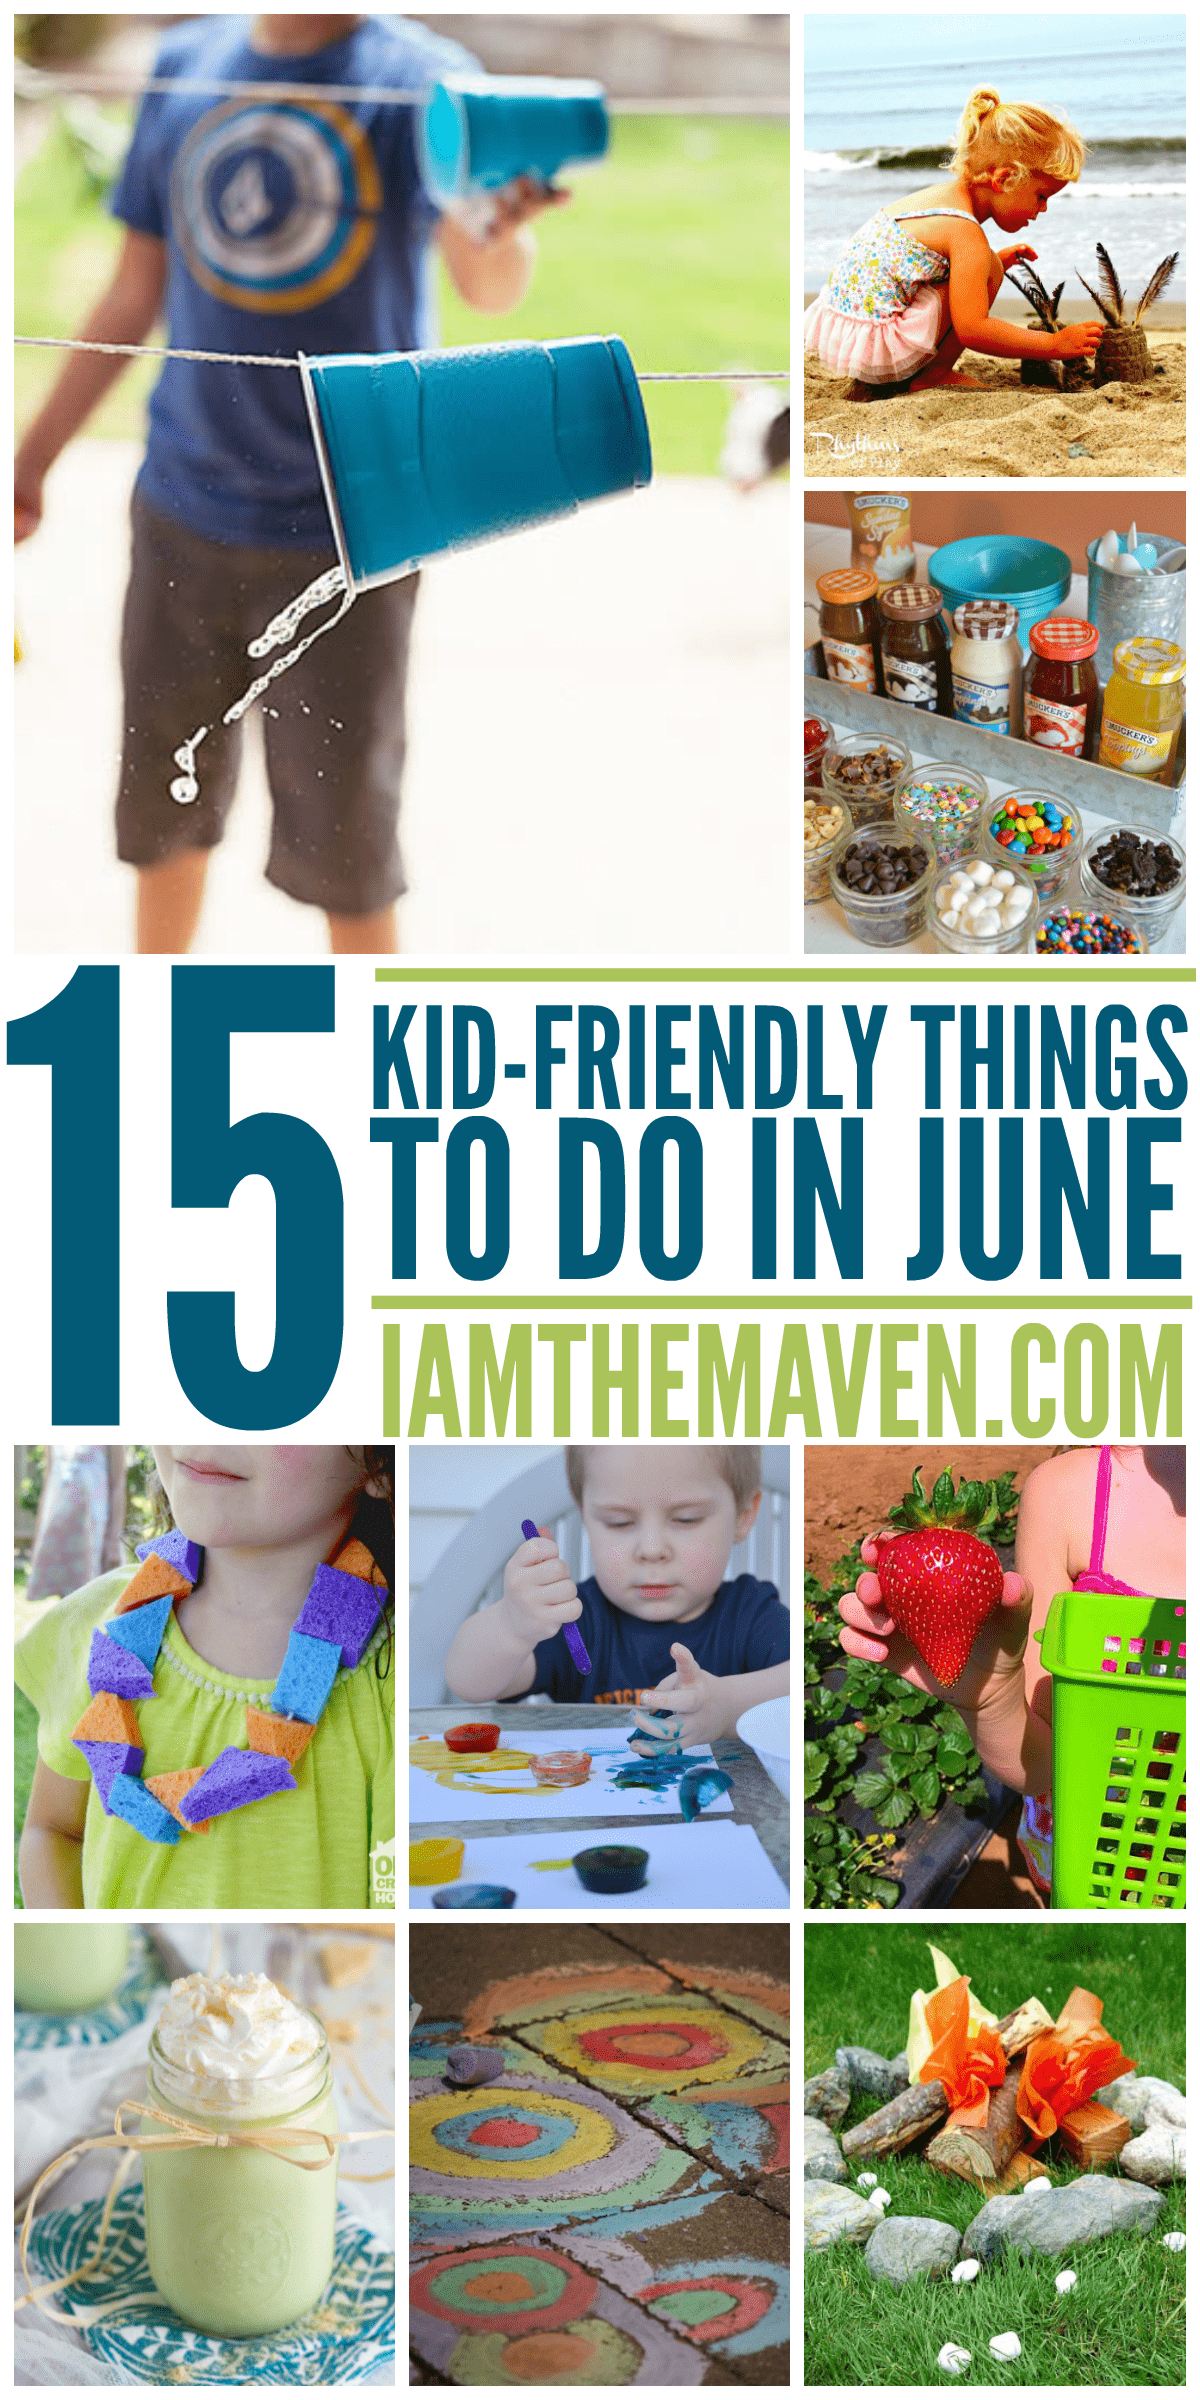 Here are 15 fun kid friendly things to do in June